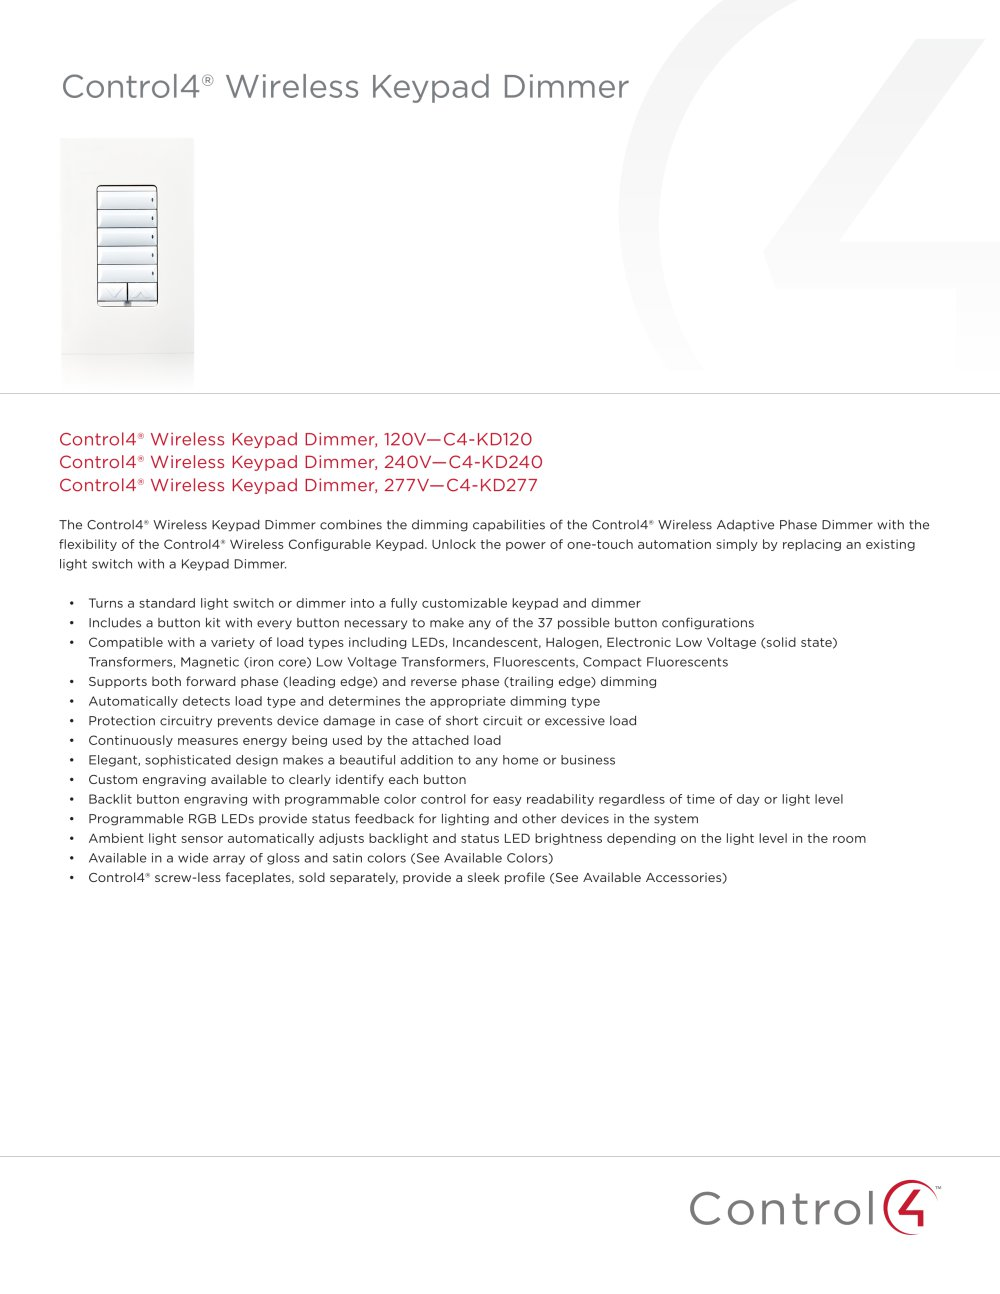 Wireless Keypad Dimmer - 1 / 3 Pages  sc 1 st  Catalogues Archiexpo & Wireless Keypad Dimmer - Control4 - PDF Catalogues   Documentation ...